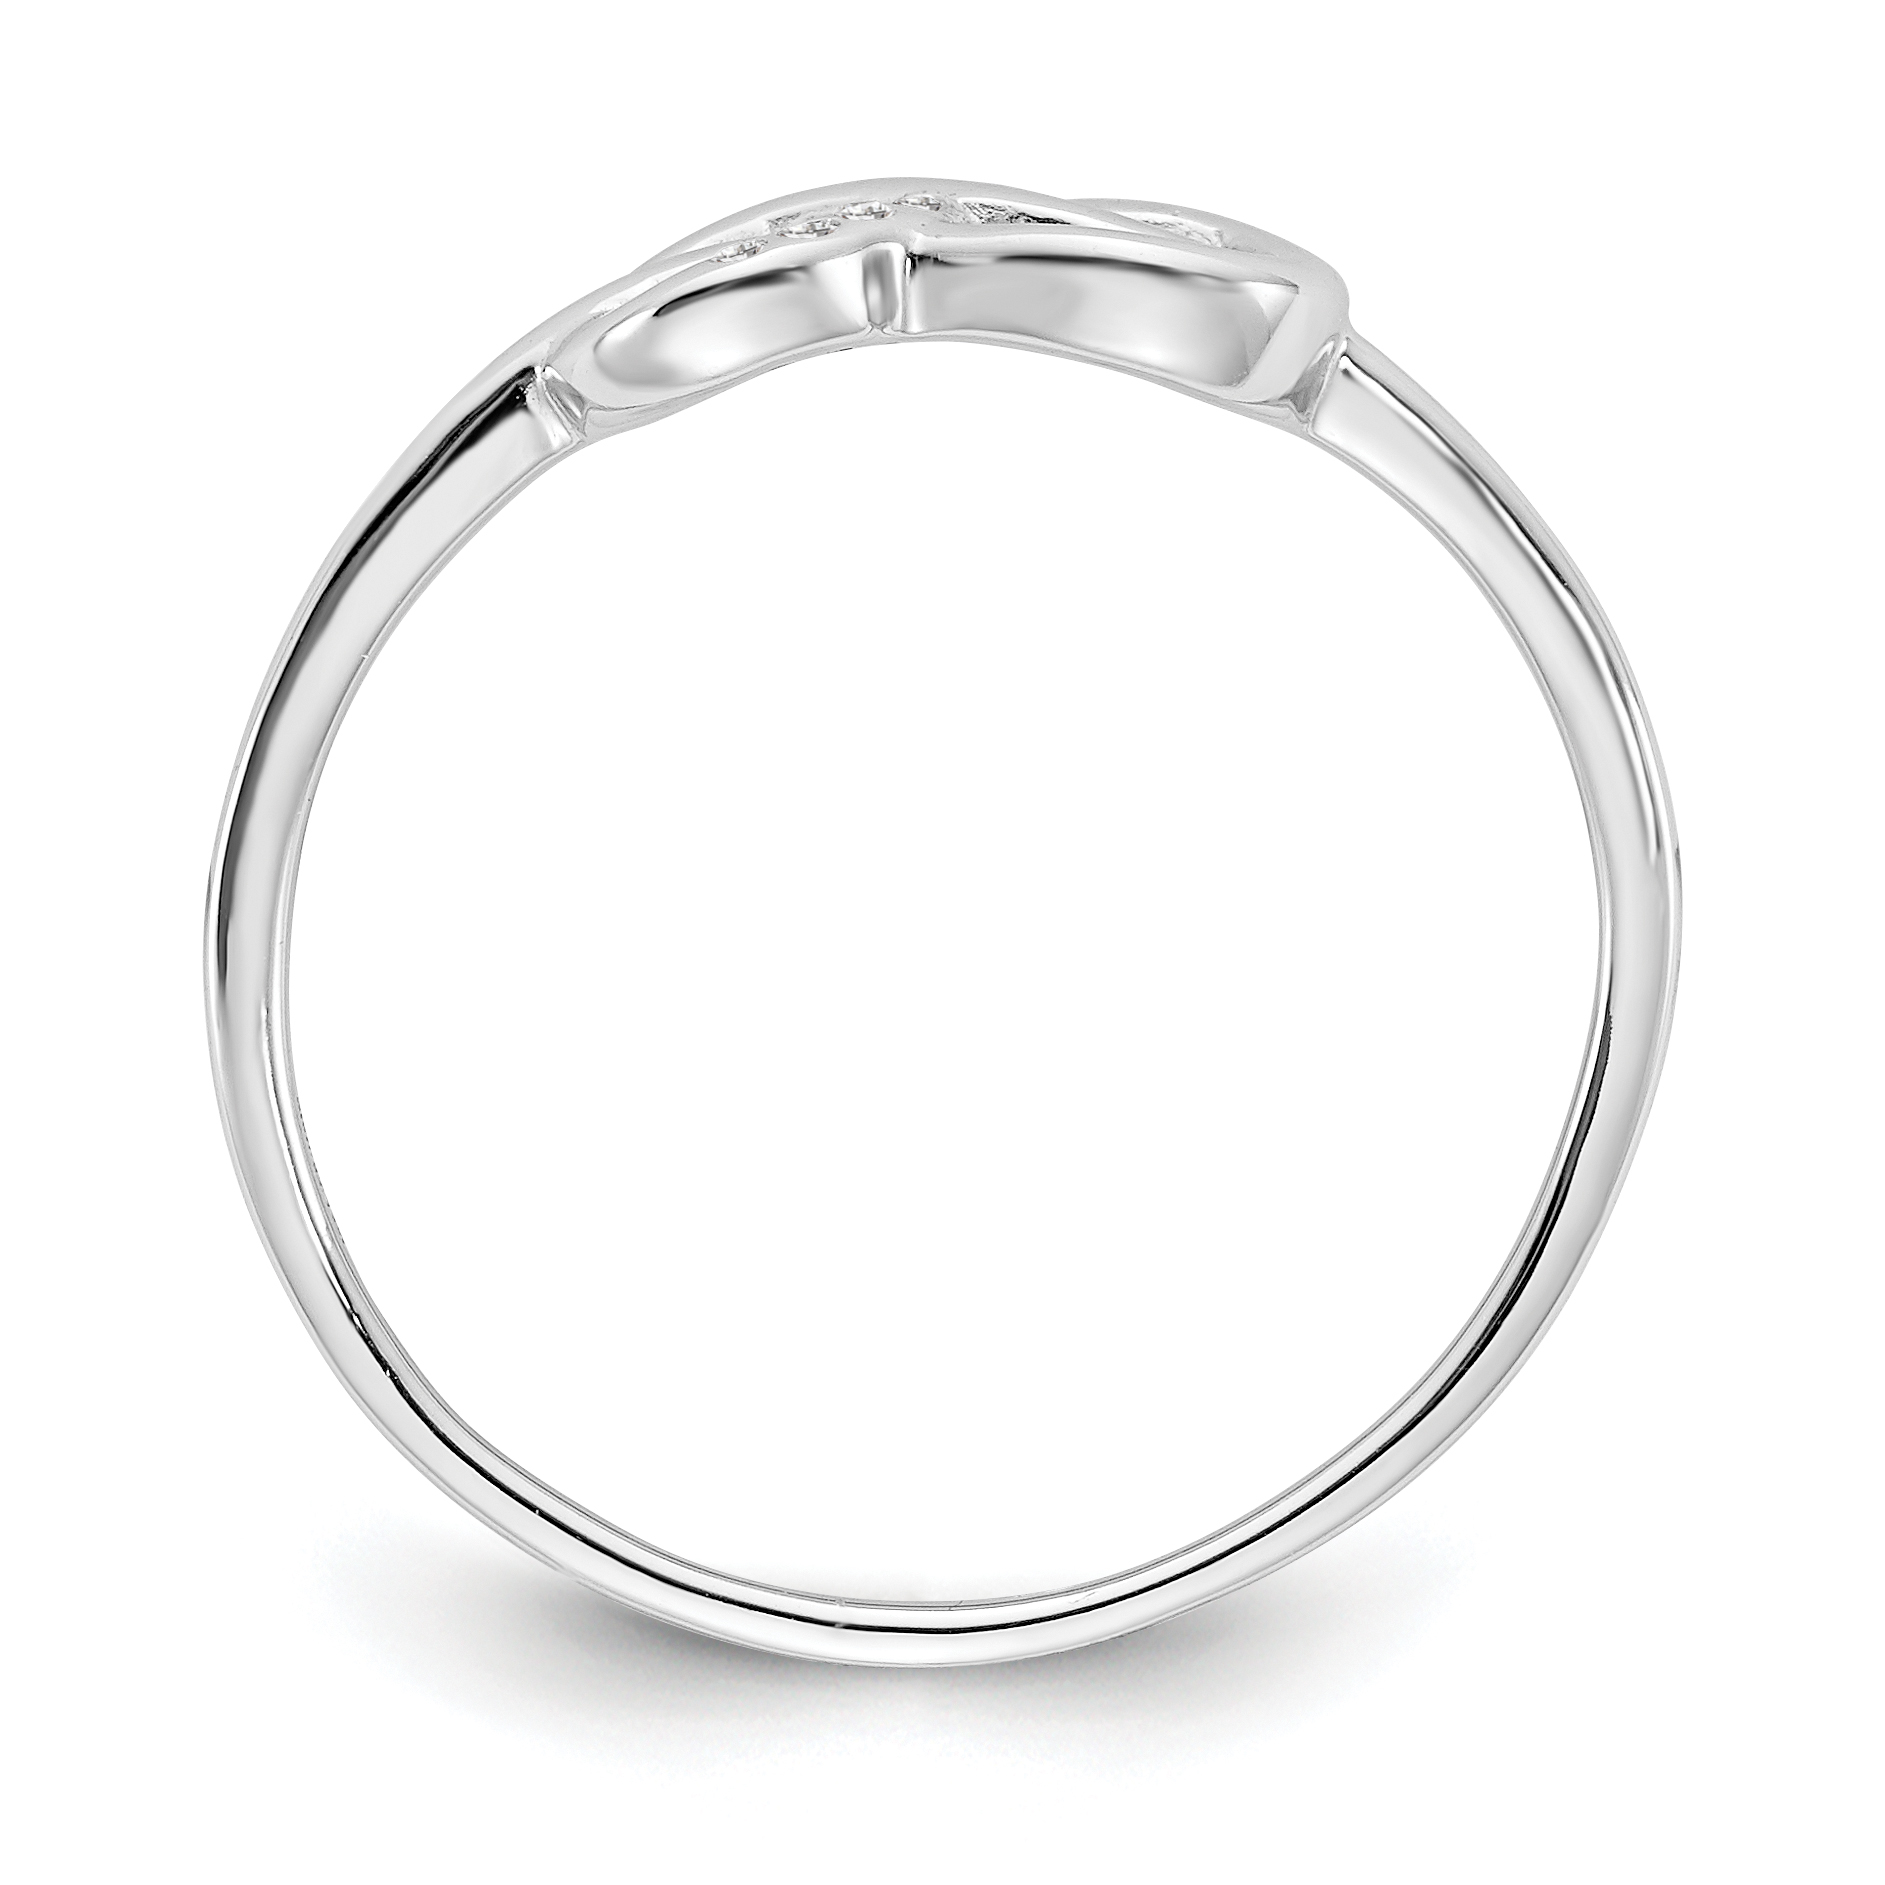 925 Sterling Silver Infinity Diamond Band Ring Size 8.00 Fine Jewelry Gifts For Women For Her - image 3 of 6